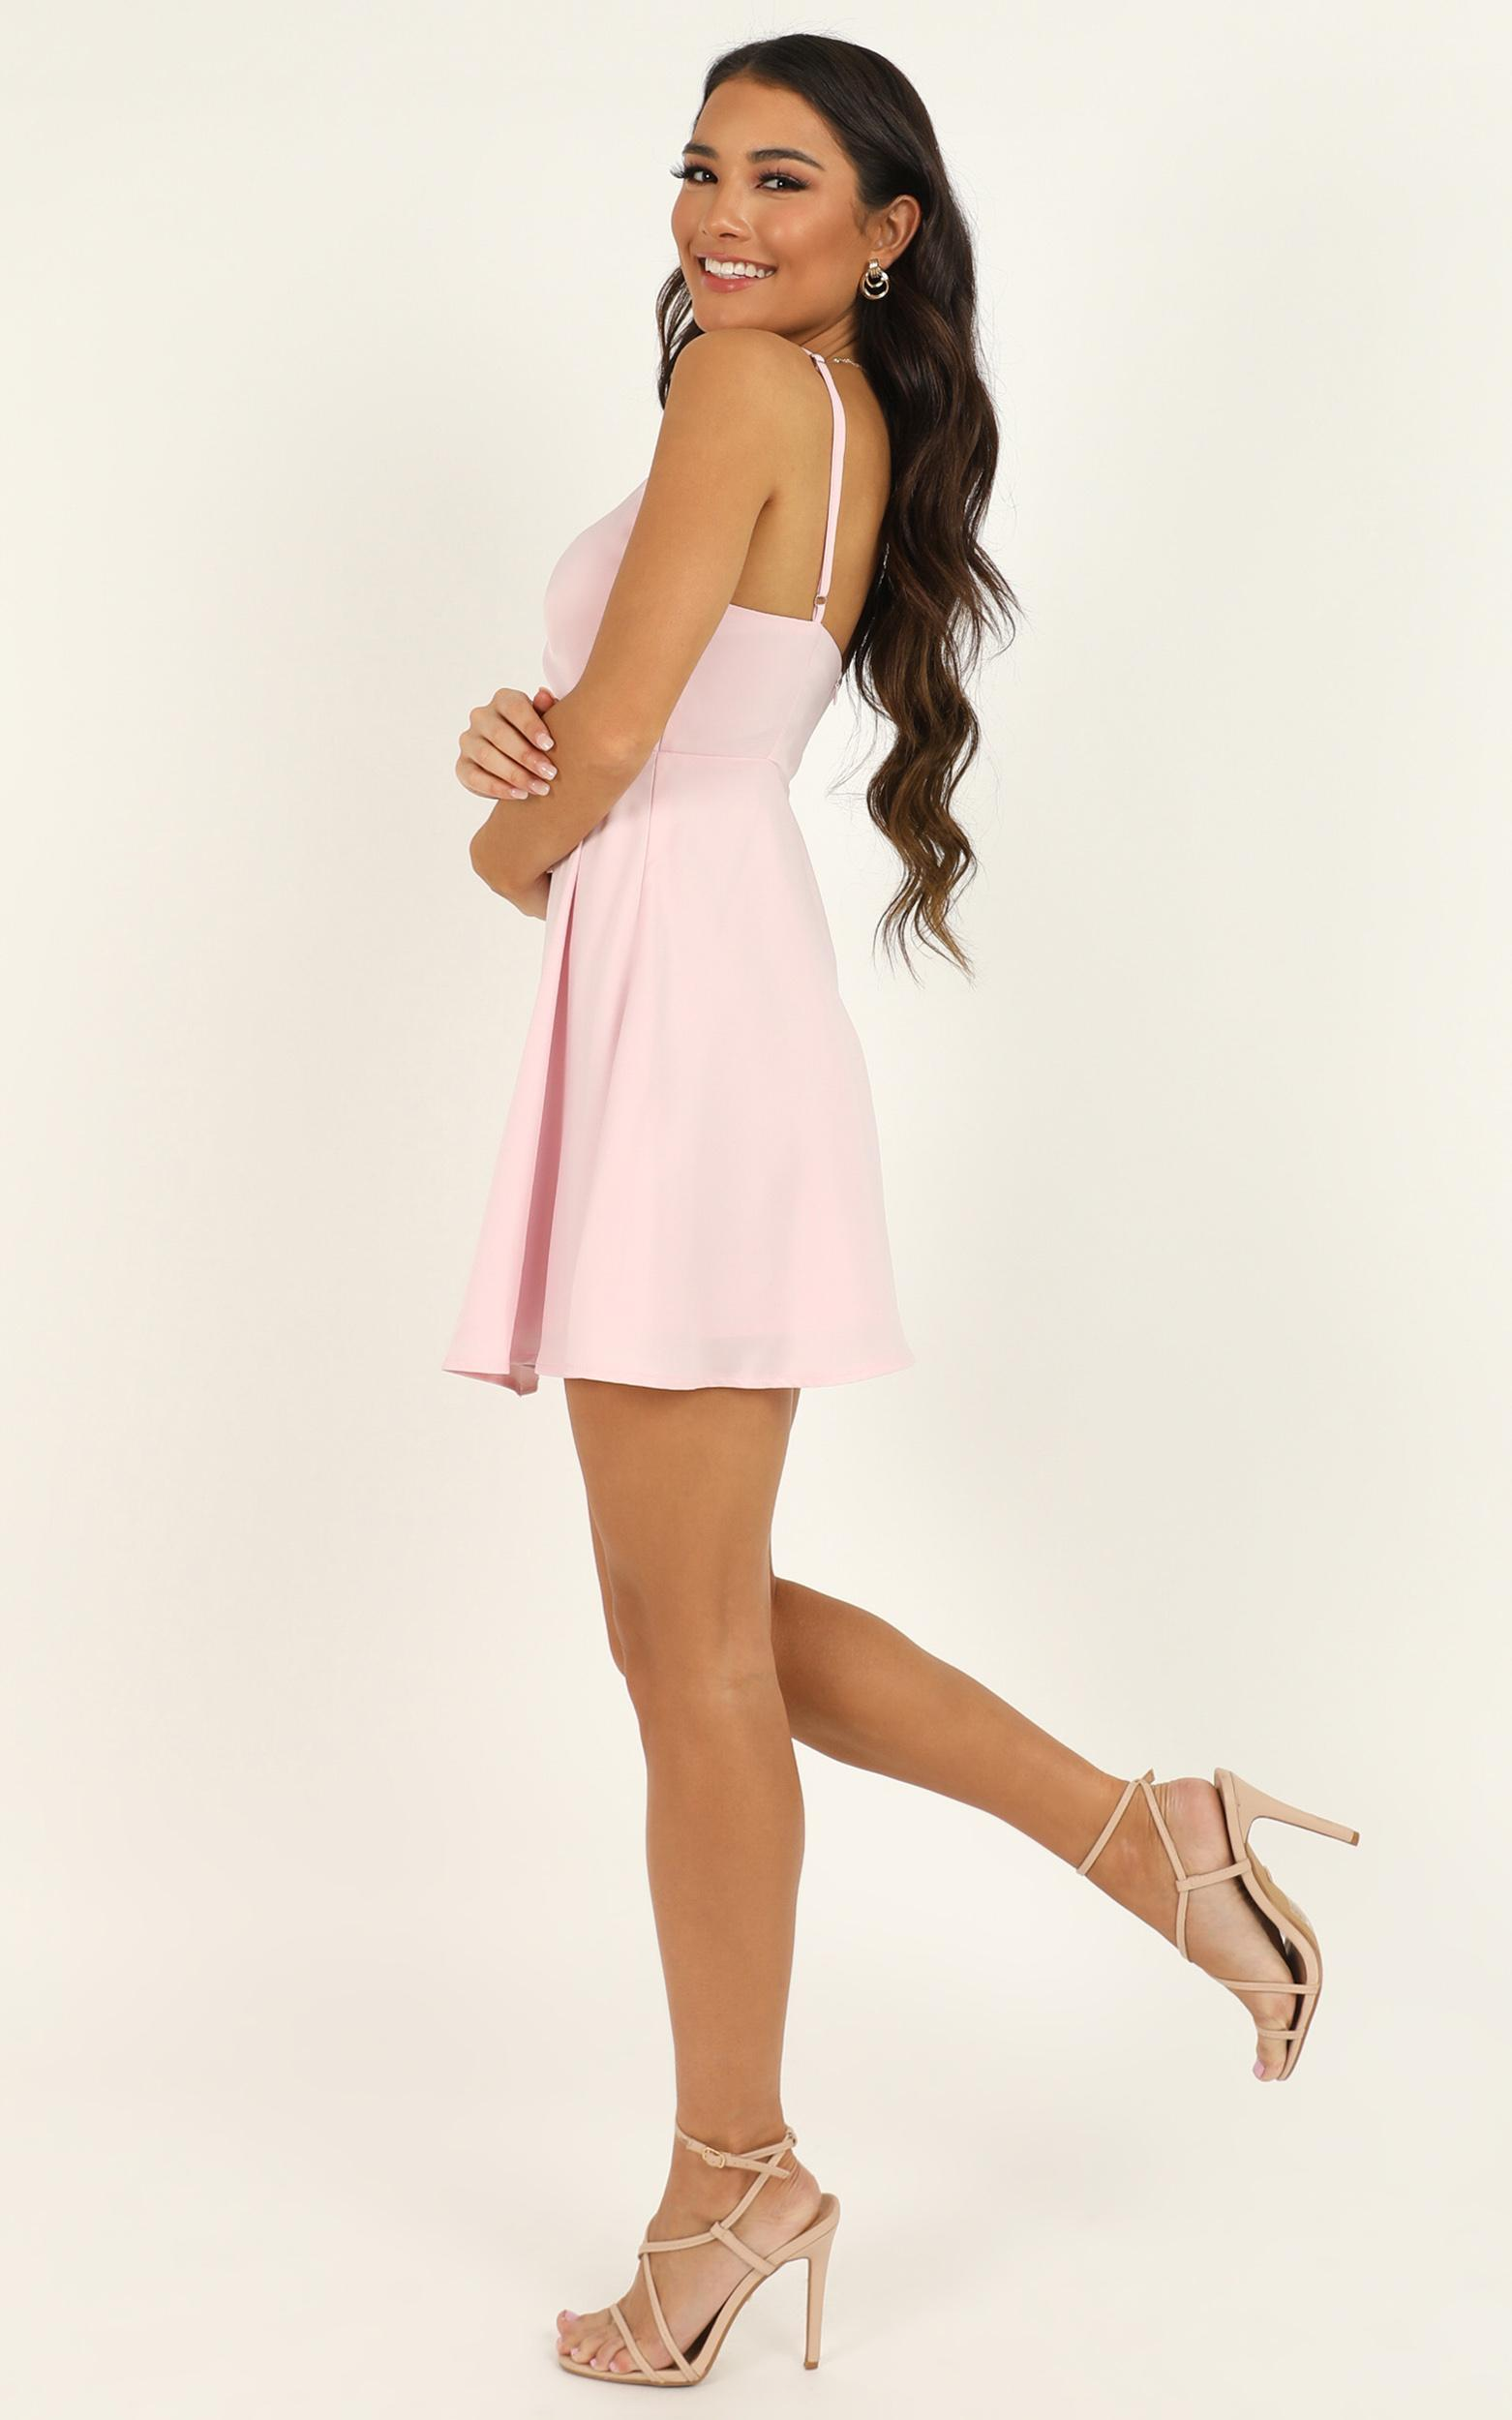 Hold You in My Palm Dress in baby pink satin - 20 (XXXXL), Pink, hi-res image number null